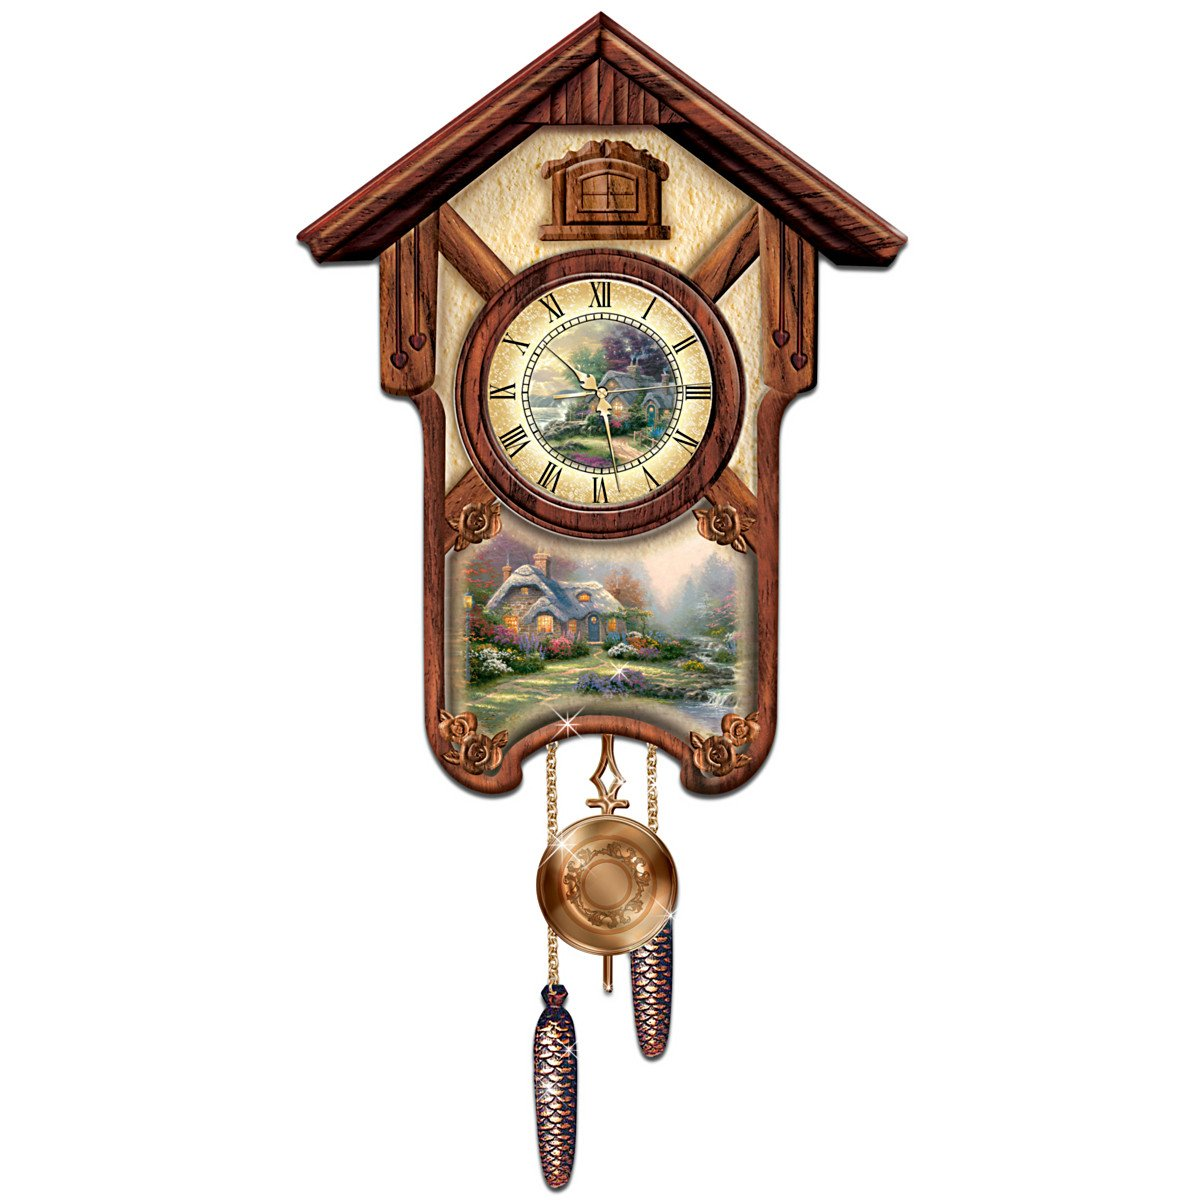 Thomas Kinkade Timeless Memories Cuckoo Clock by Thomas Kinkade